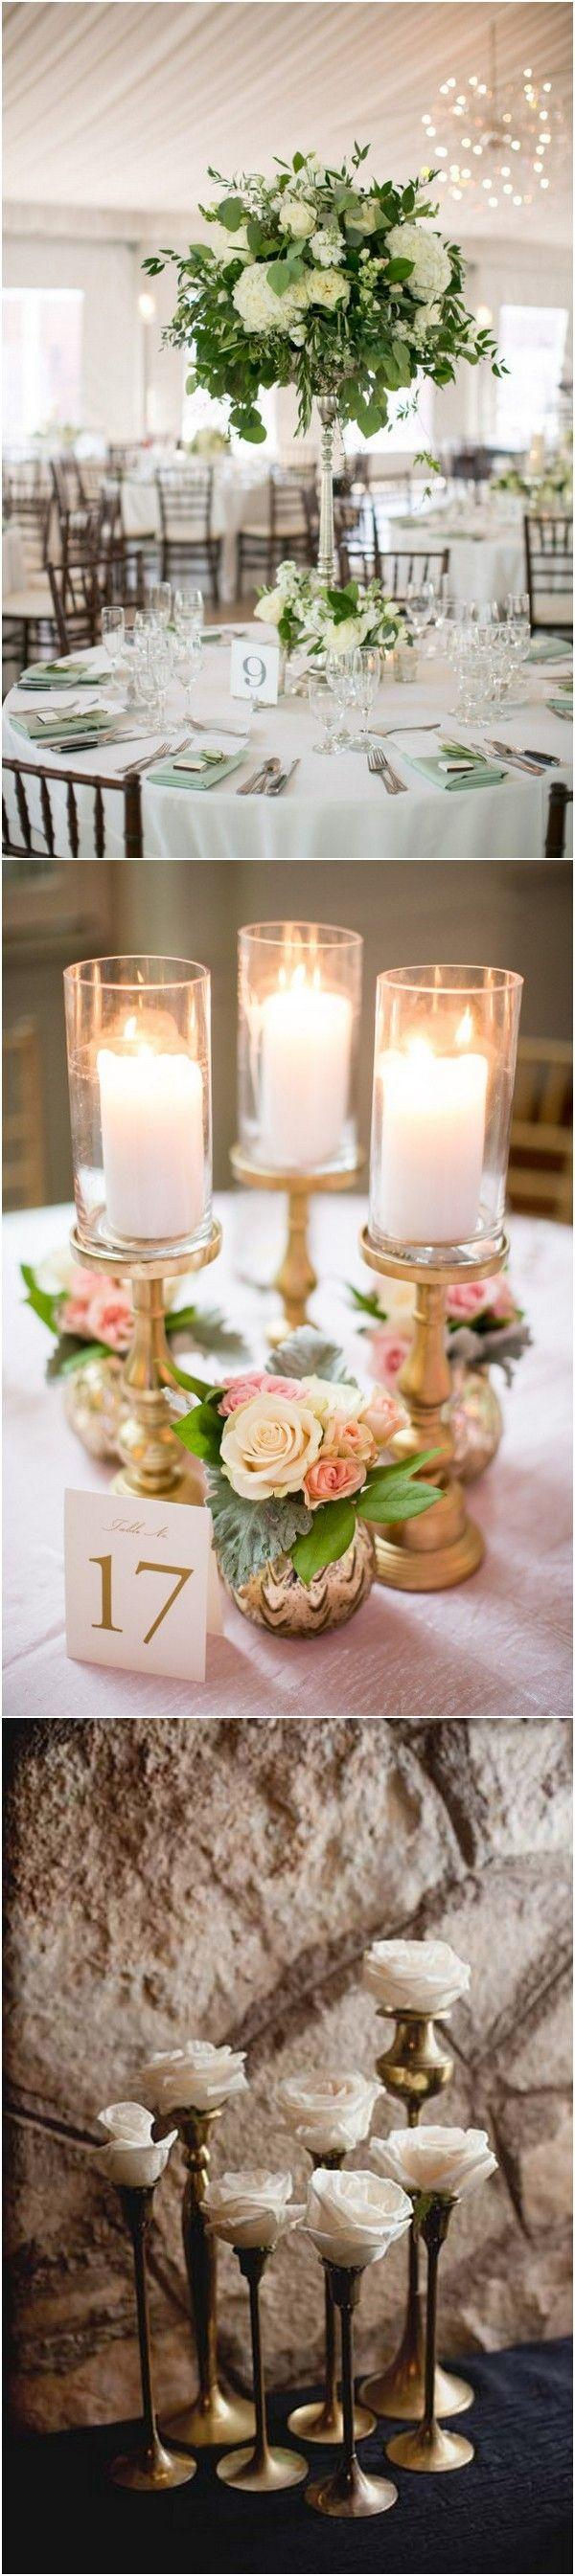 Boda - Trending-18 Outstanding Wedding Centerpieces With Candlesticks